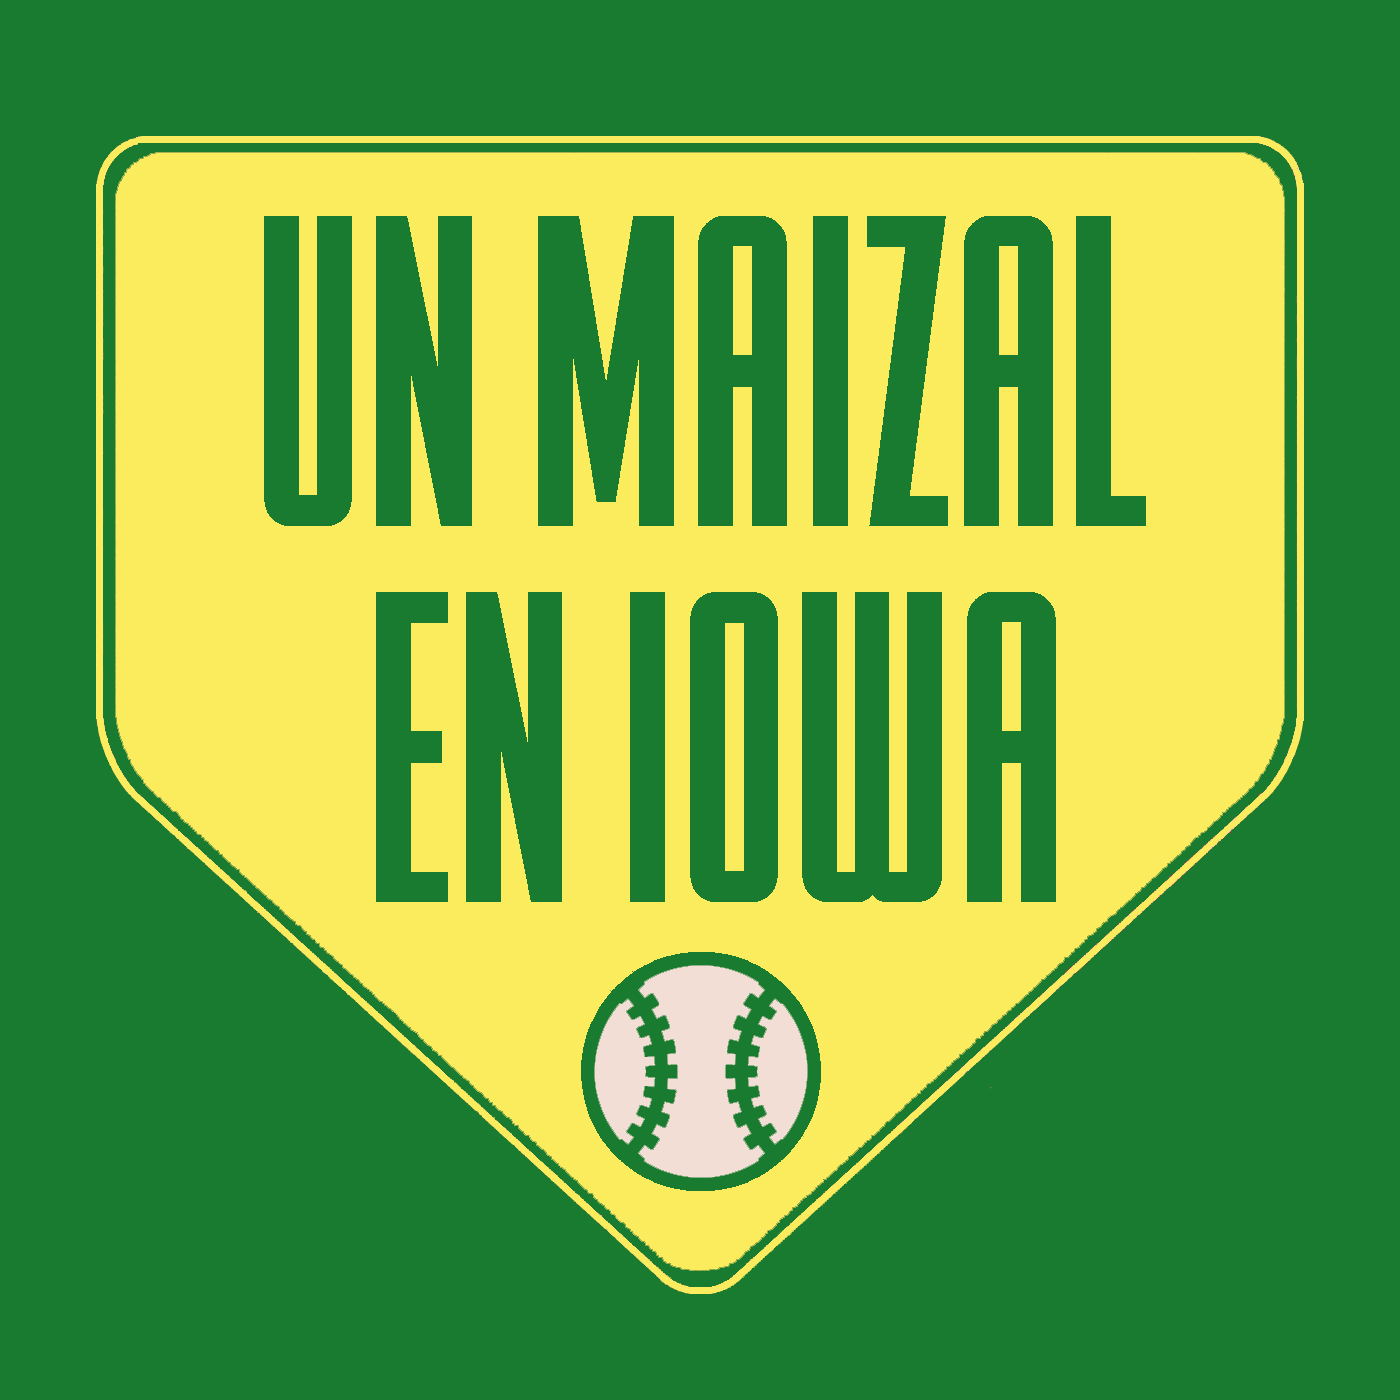 maizal-en-iowa